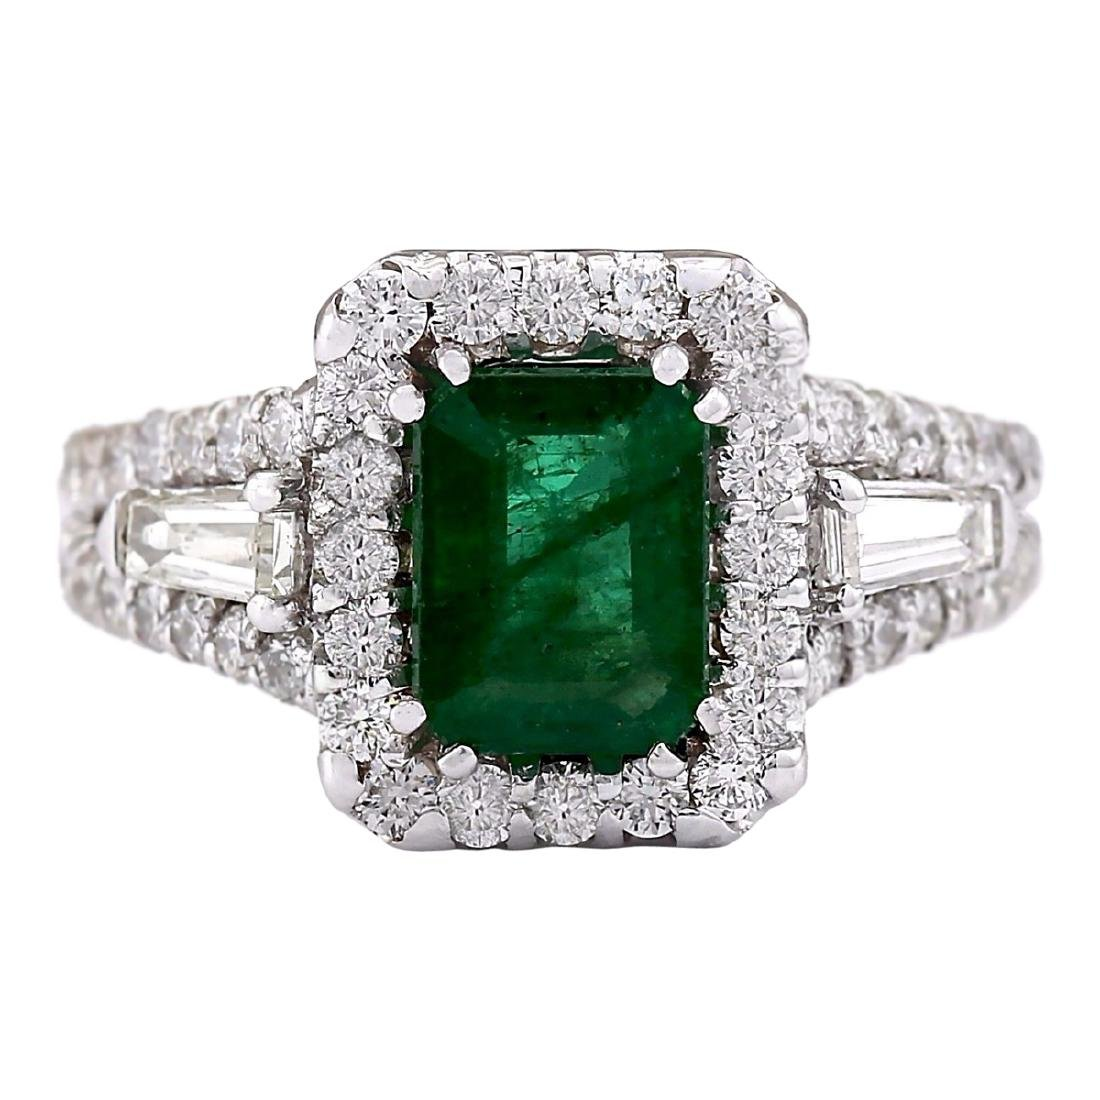 3.30 CTW Natural Emerald And Diamond Ring In 18K White